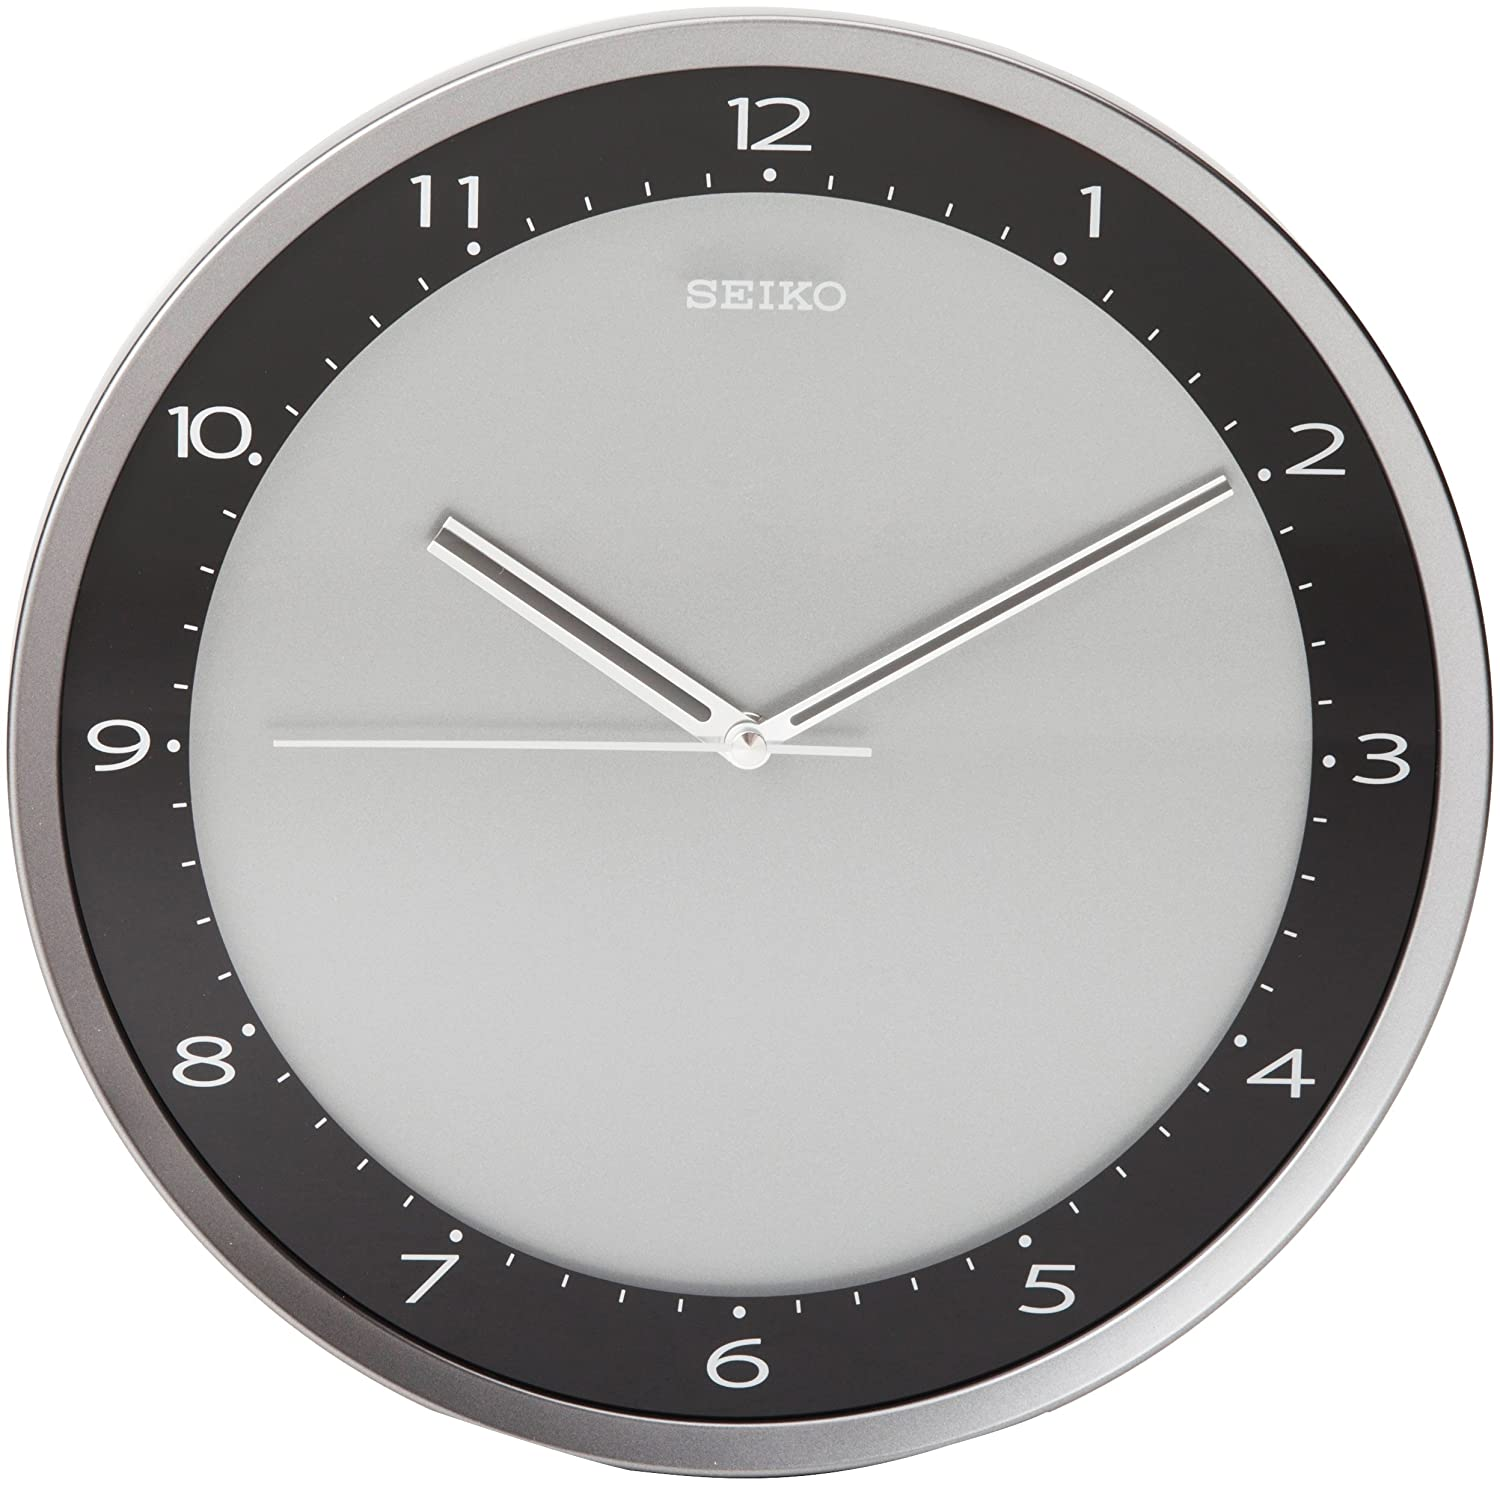 Buy seiko wall clock quiet sweep second hand clock black metallic buy seiko wall clock quiet sweep second hand clock black metallic case online at low prices in india amazon amipublicfo Image collections